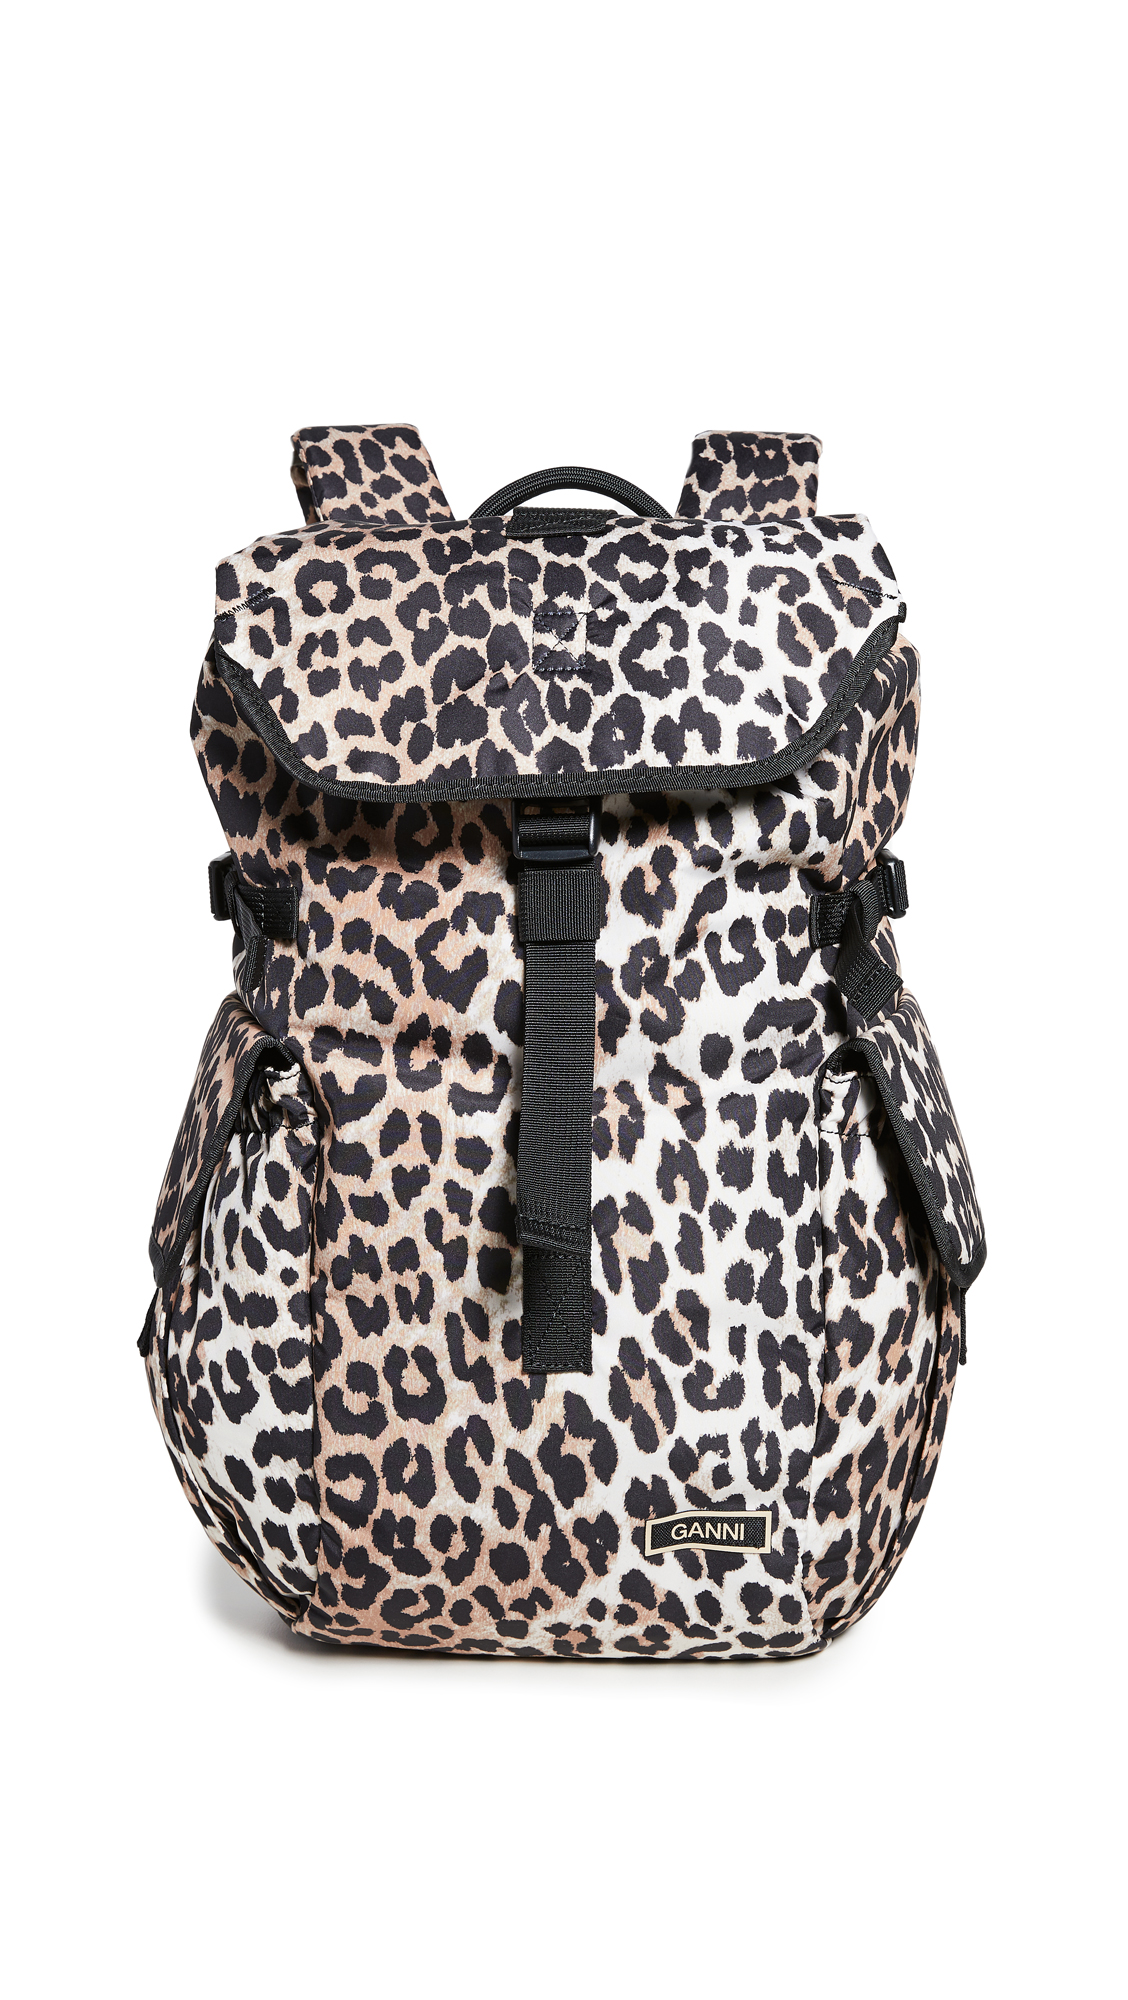 GANNI Leopard Backpack